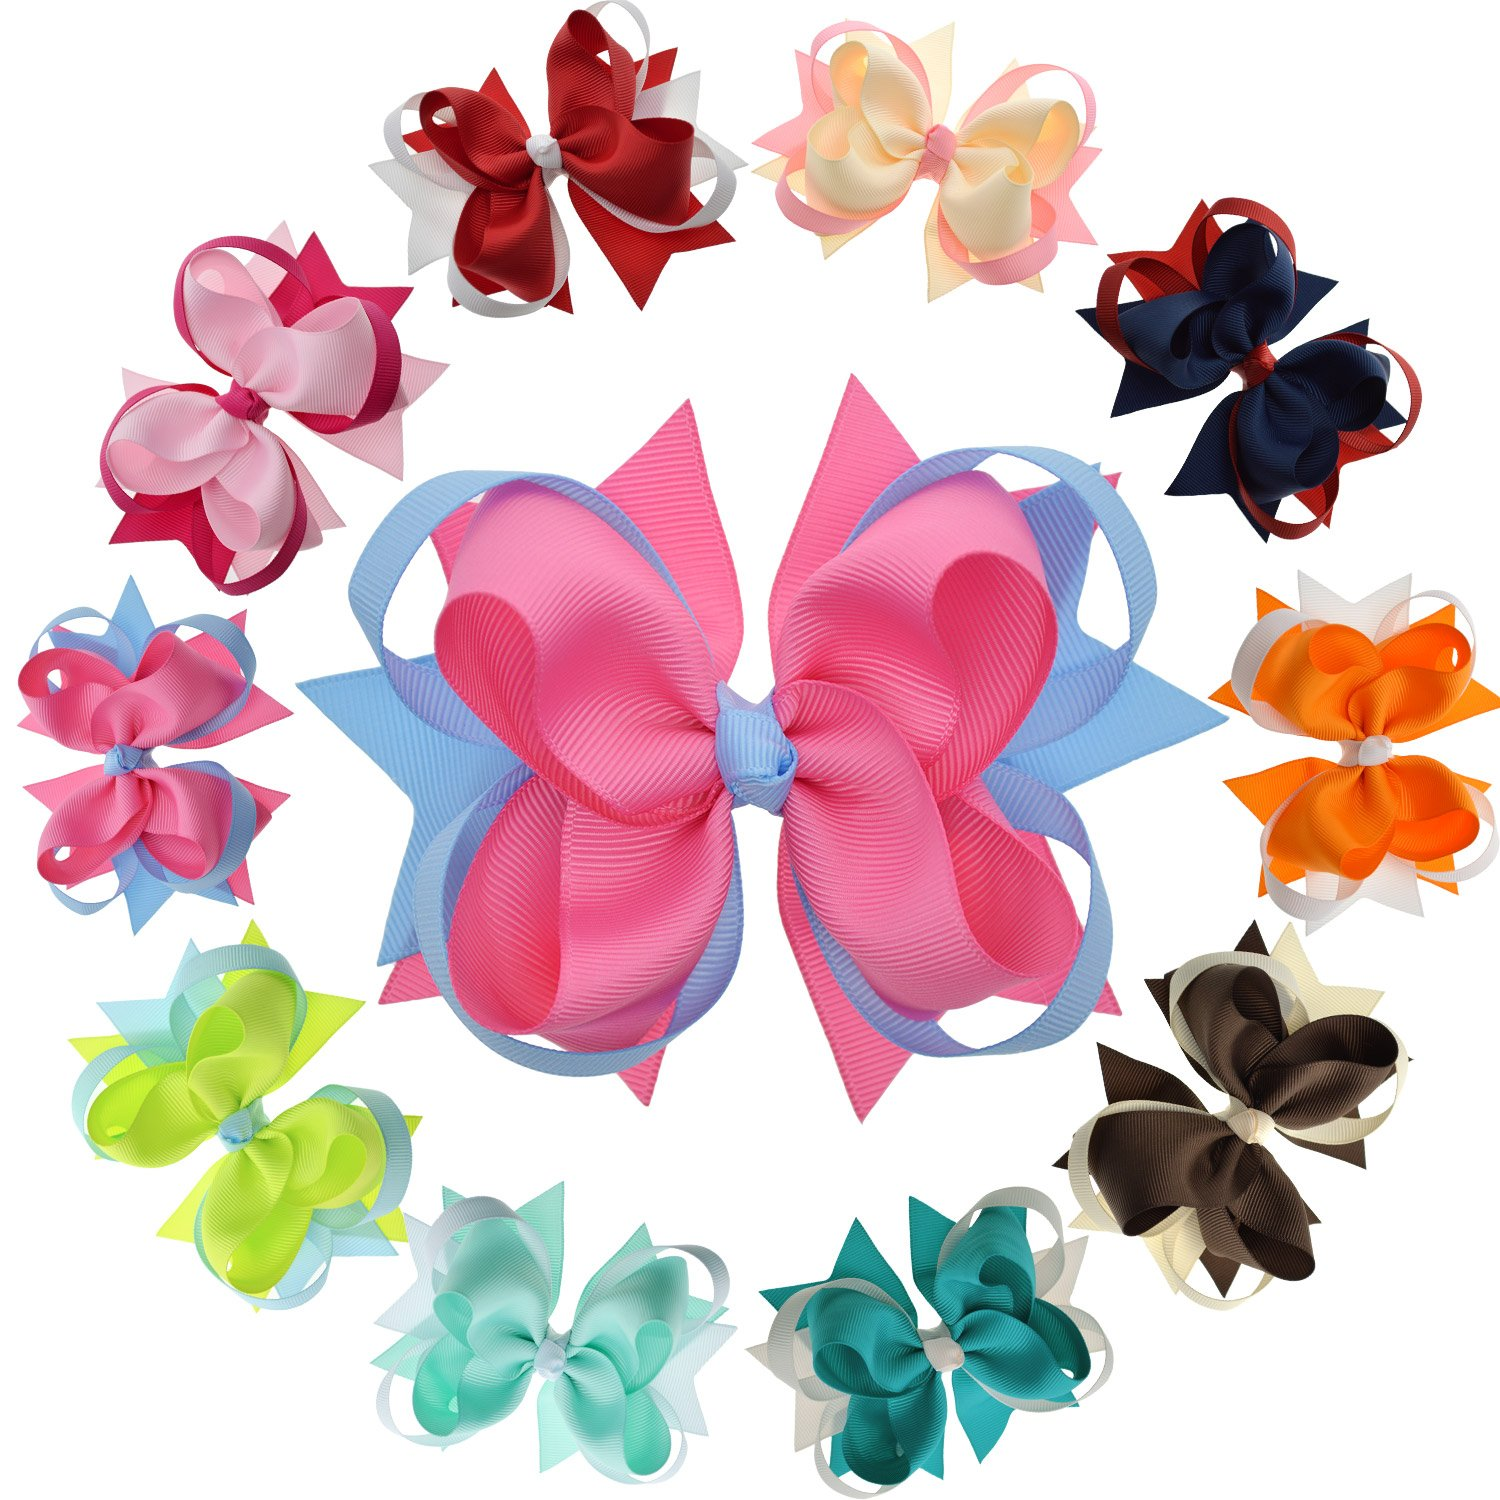 Girls' Accessories Trustful Handmade Hair Bow